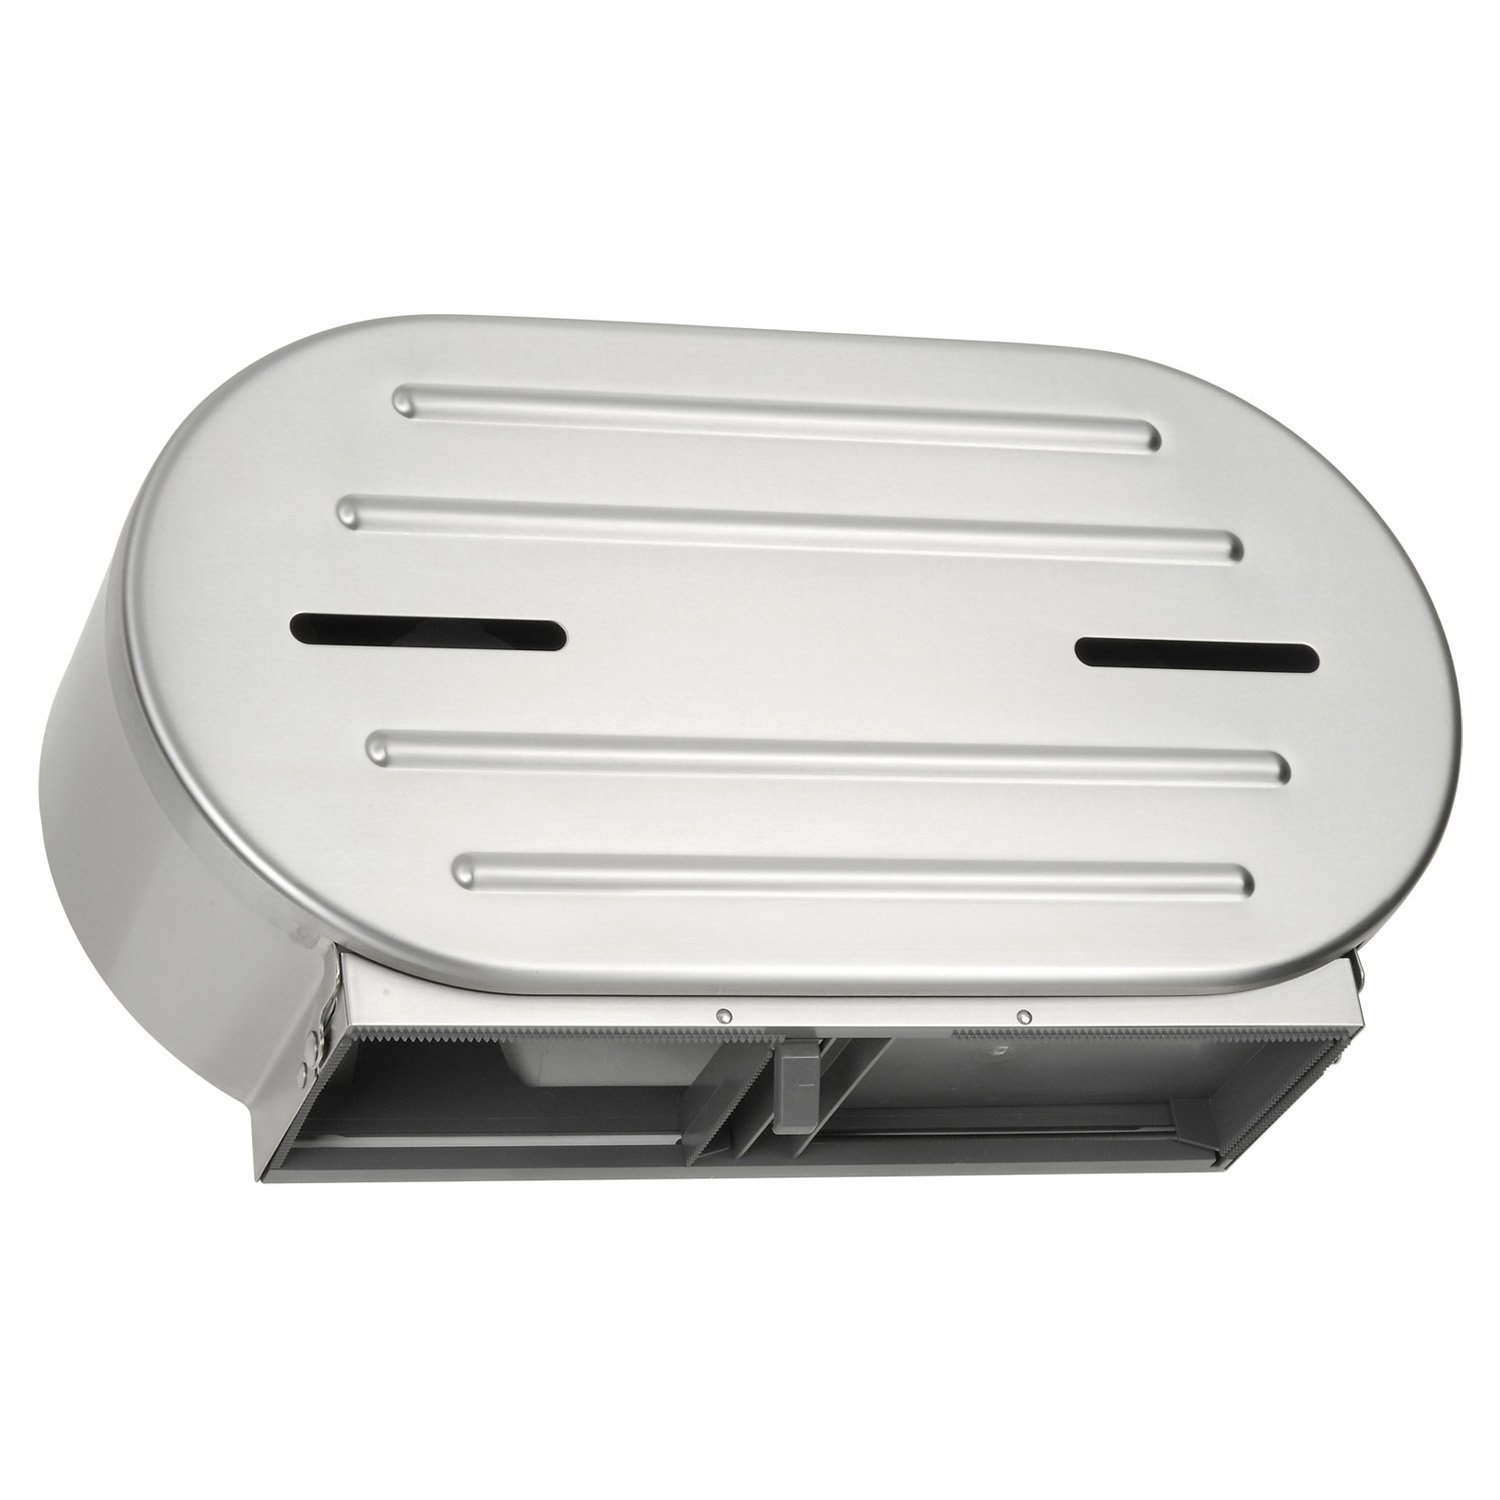 ASI 0040 Surface Mounted Super-cheap Price reduction Twin Tissue 9